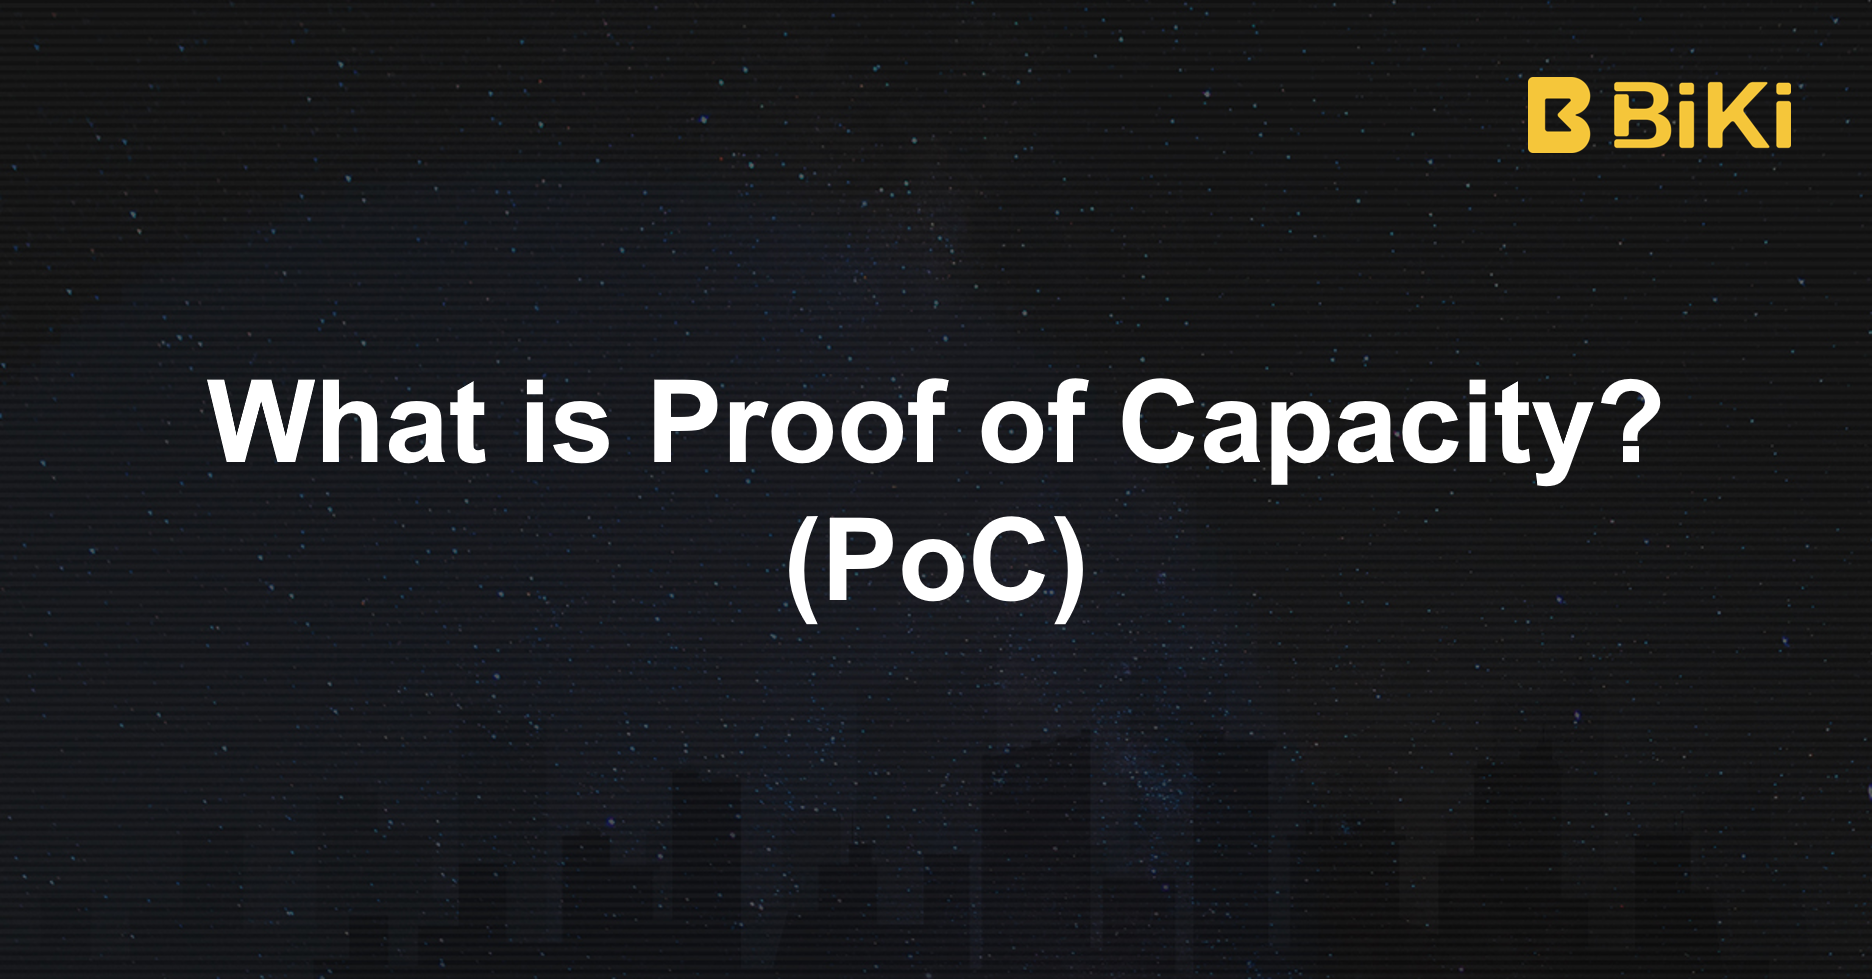 BiKi explaining what is Proof of Capacity (PoC)